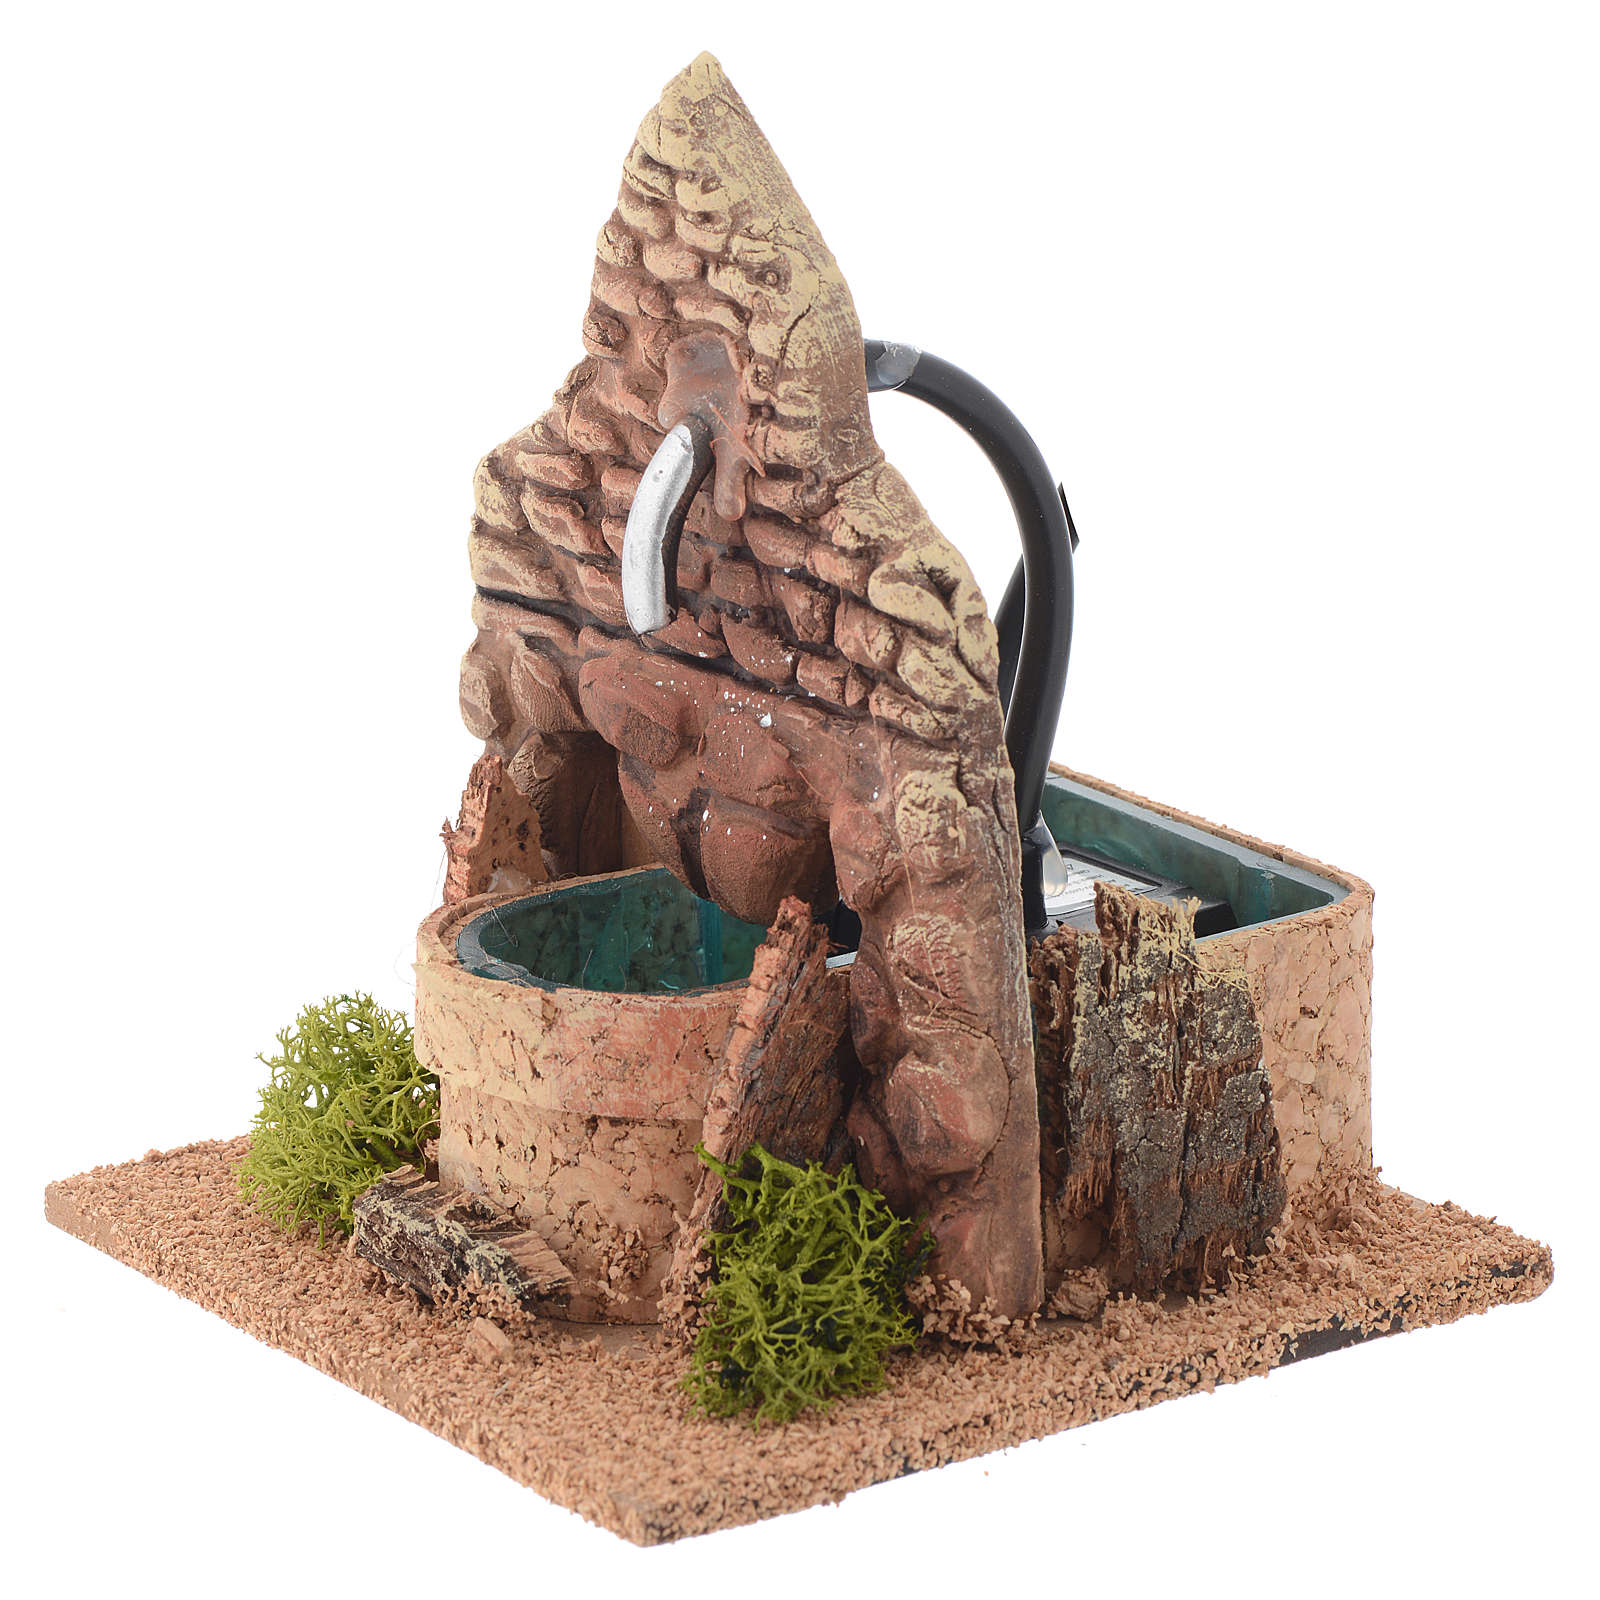 Fontaine terre cuite style arabe 12x12x13 cm 4